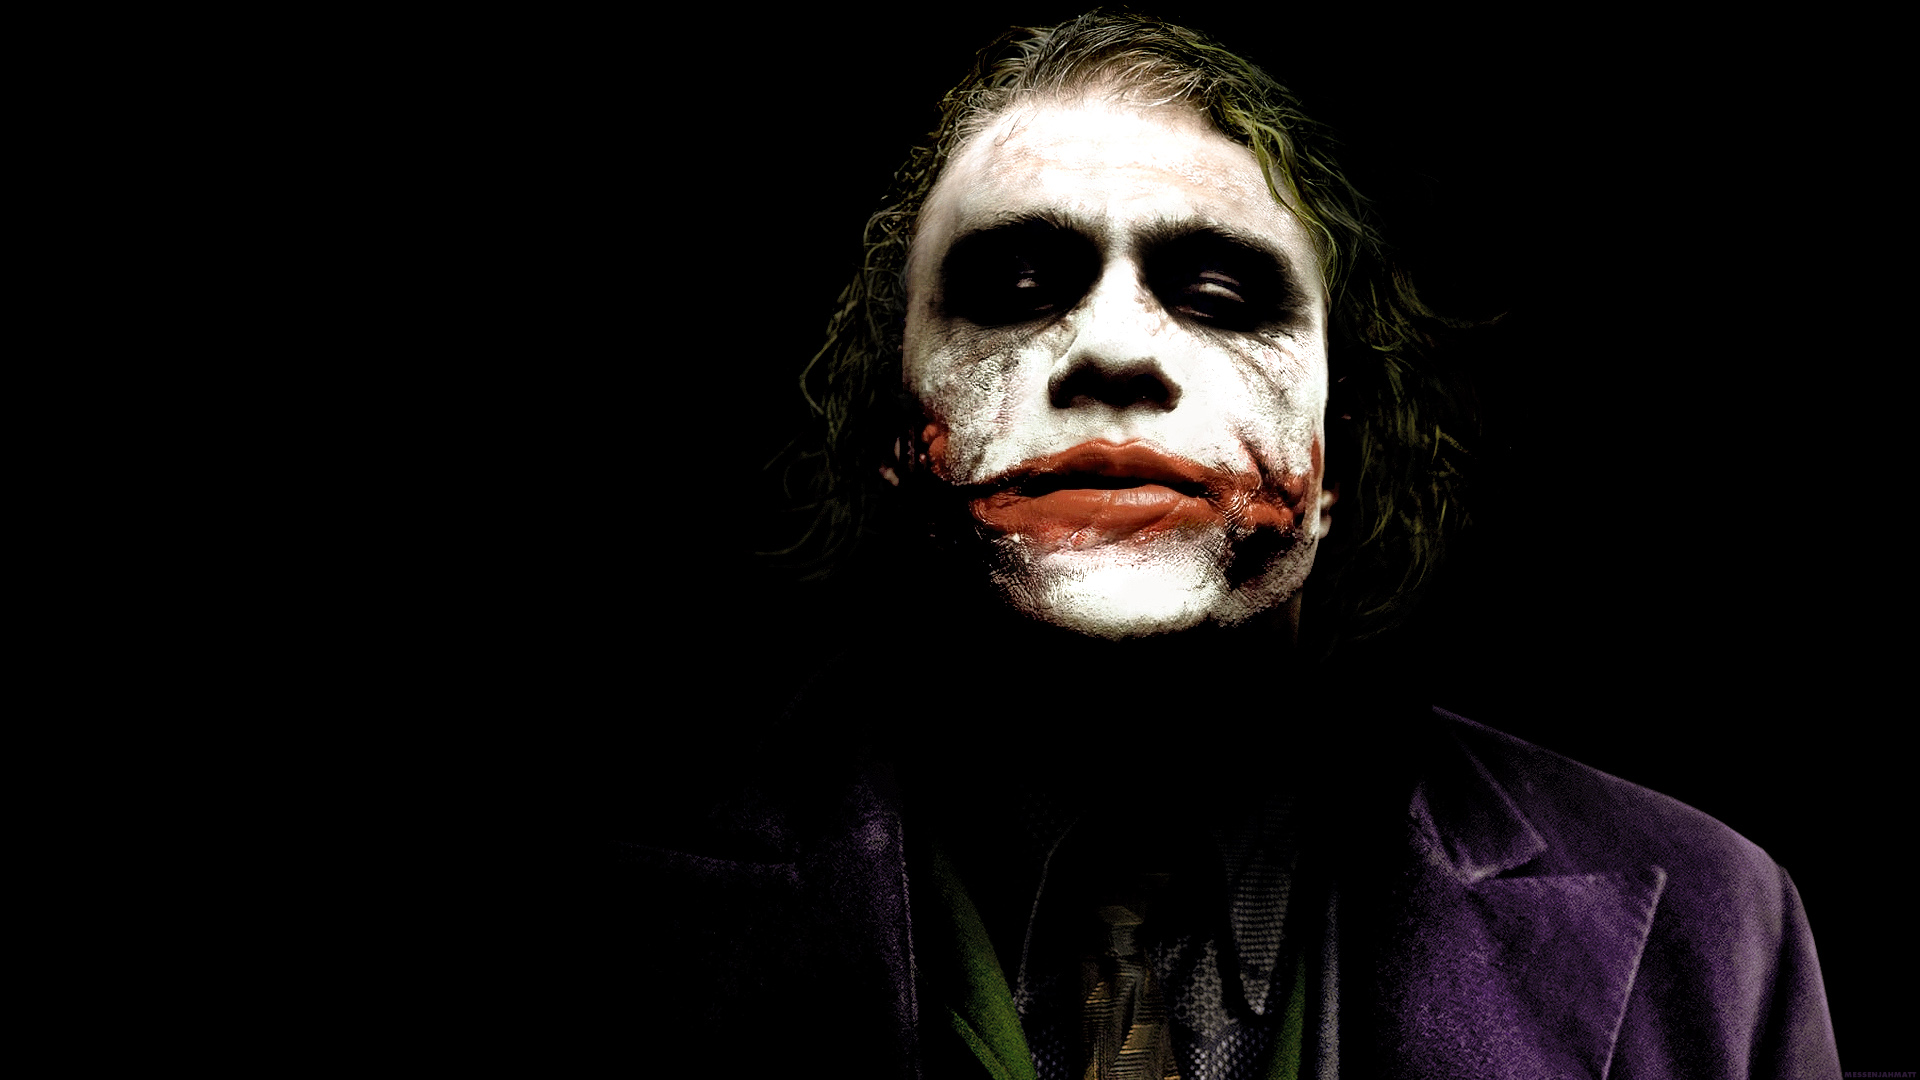 The Dark Knight Joker Wallpapers - WallpaperSafari